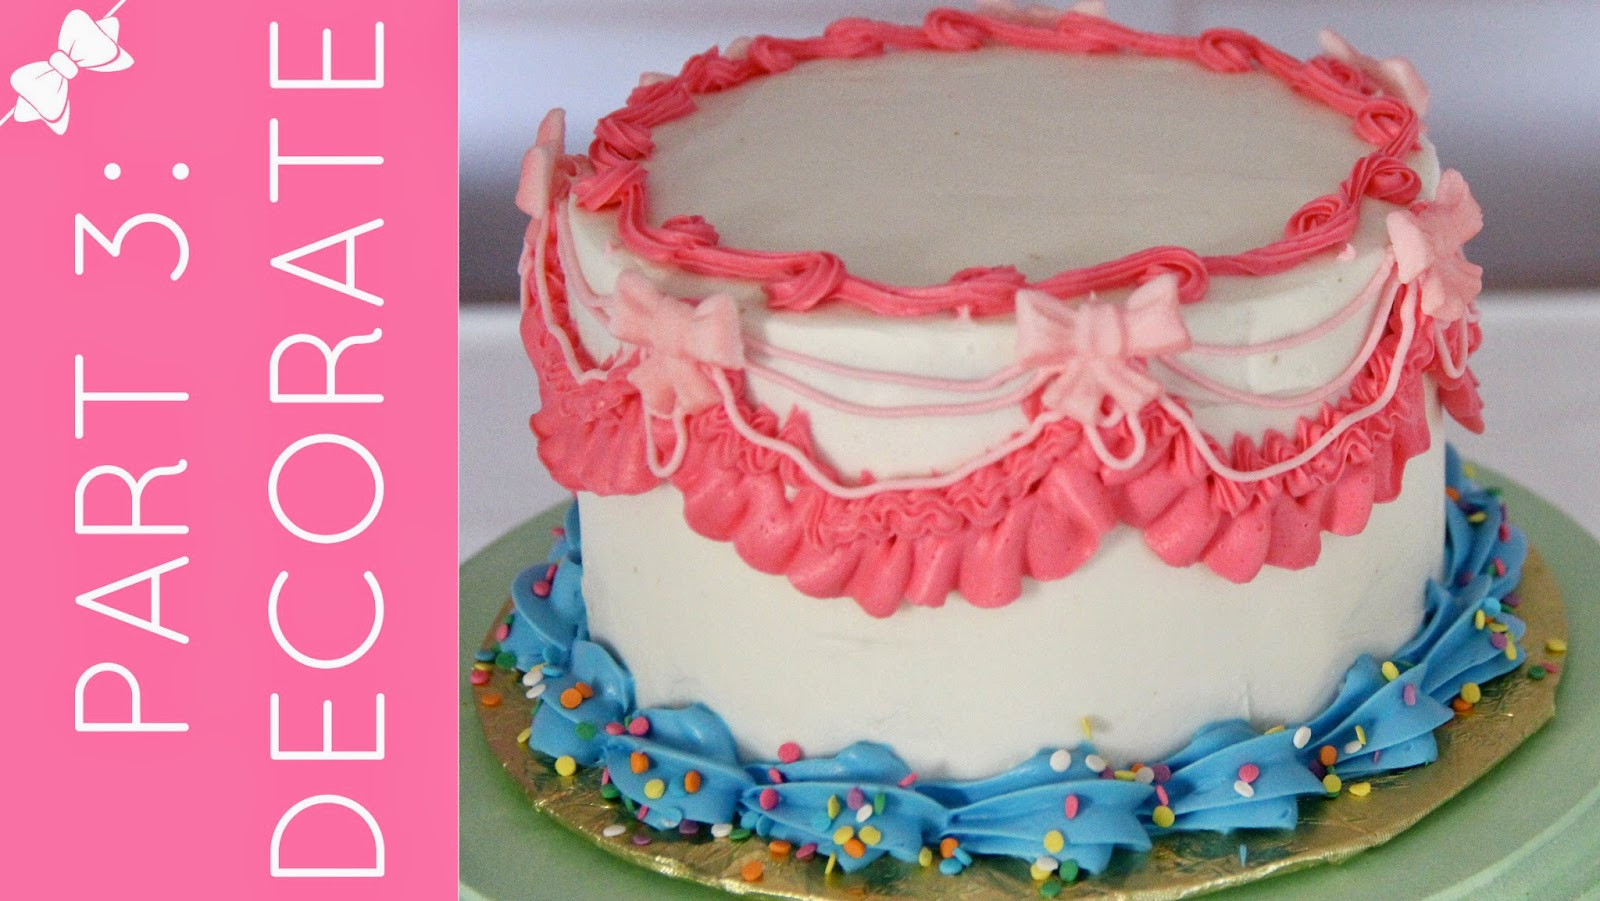 Video cake decorating 101 part 1 how to level tort for Decoration layer cake